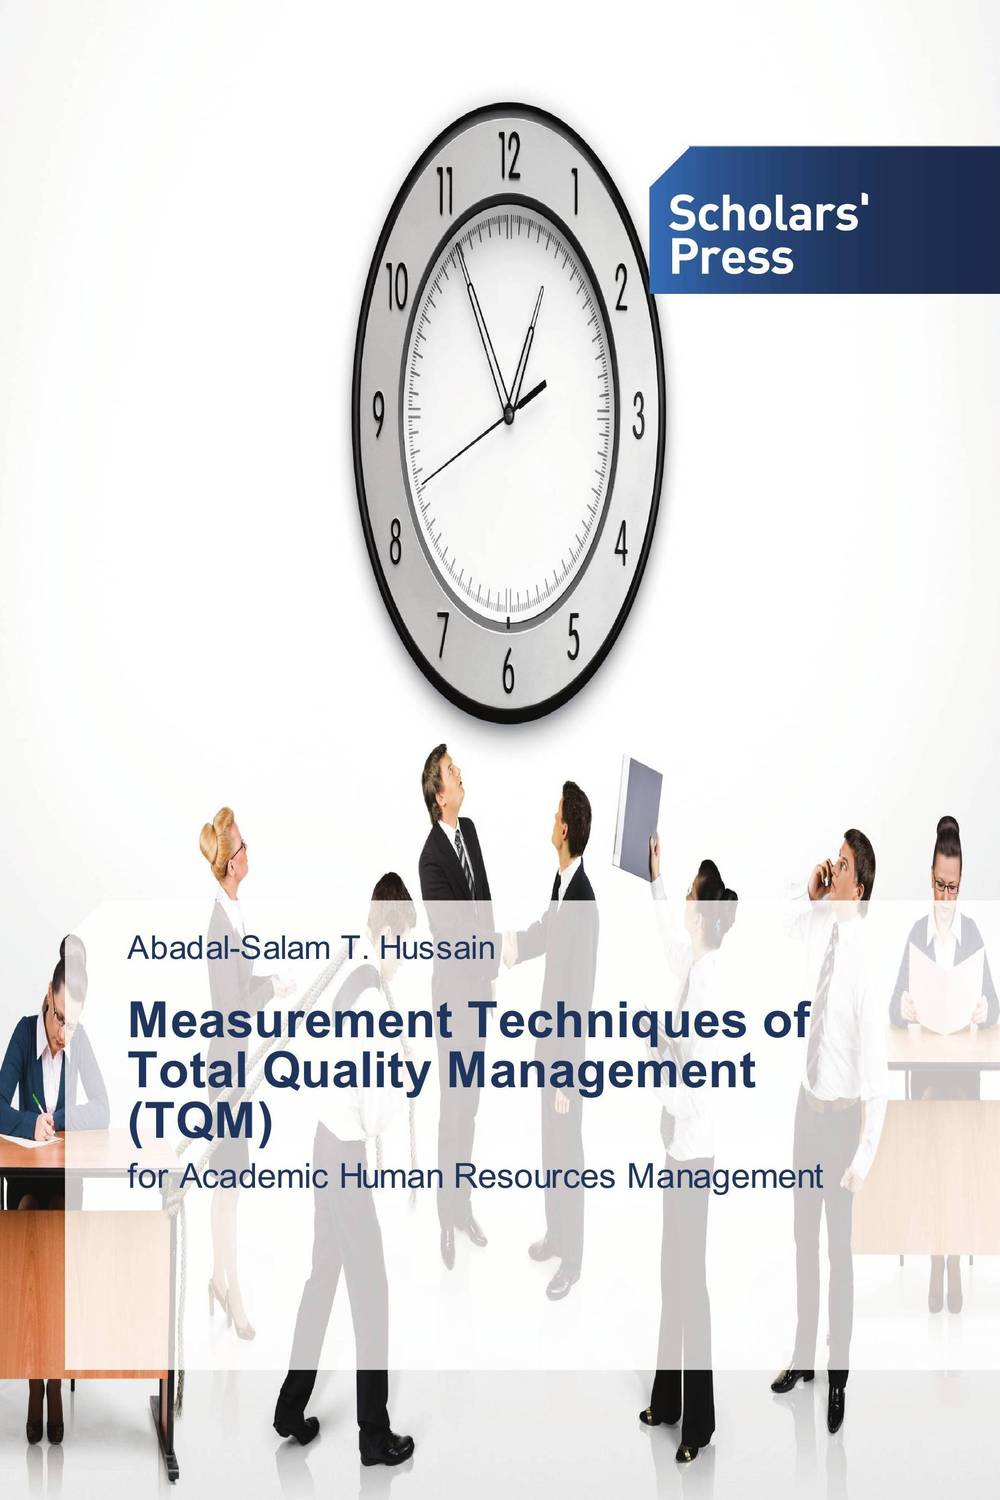 Measurement Techniques of Total Quality Management (TQM) брэдбери р the martian chronicles марсианские хроники